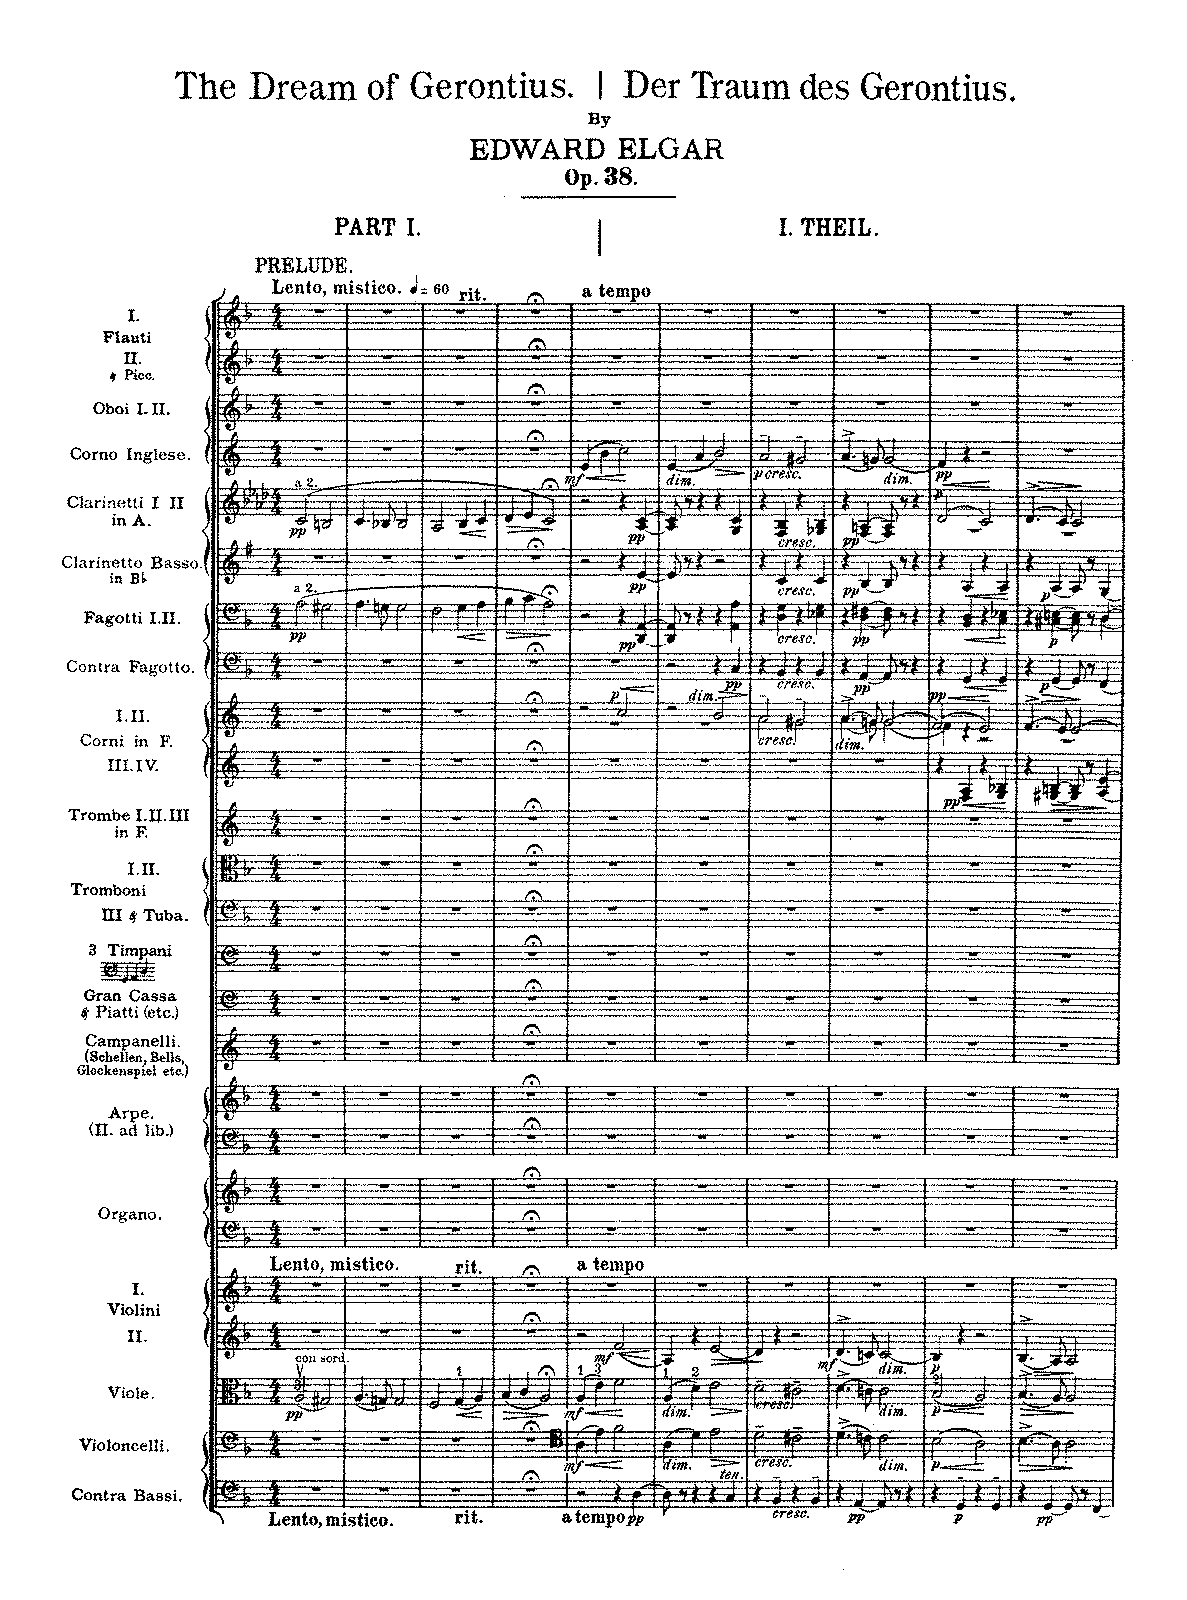 PMLP40537-Elgar - The Dream of Gerontius, Op. 38 - Part I (orch. score).pdf